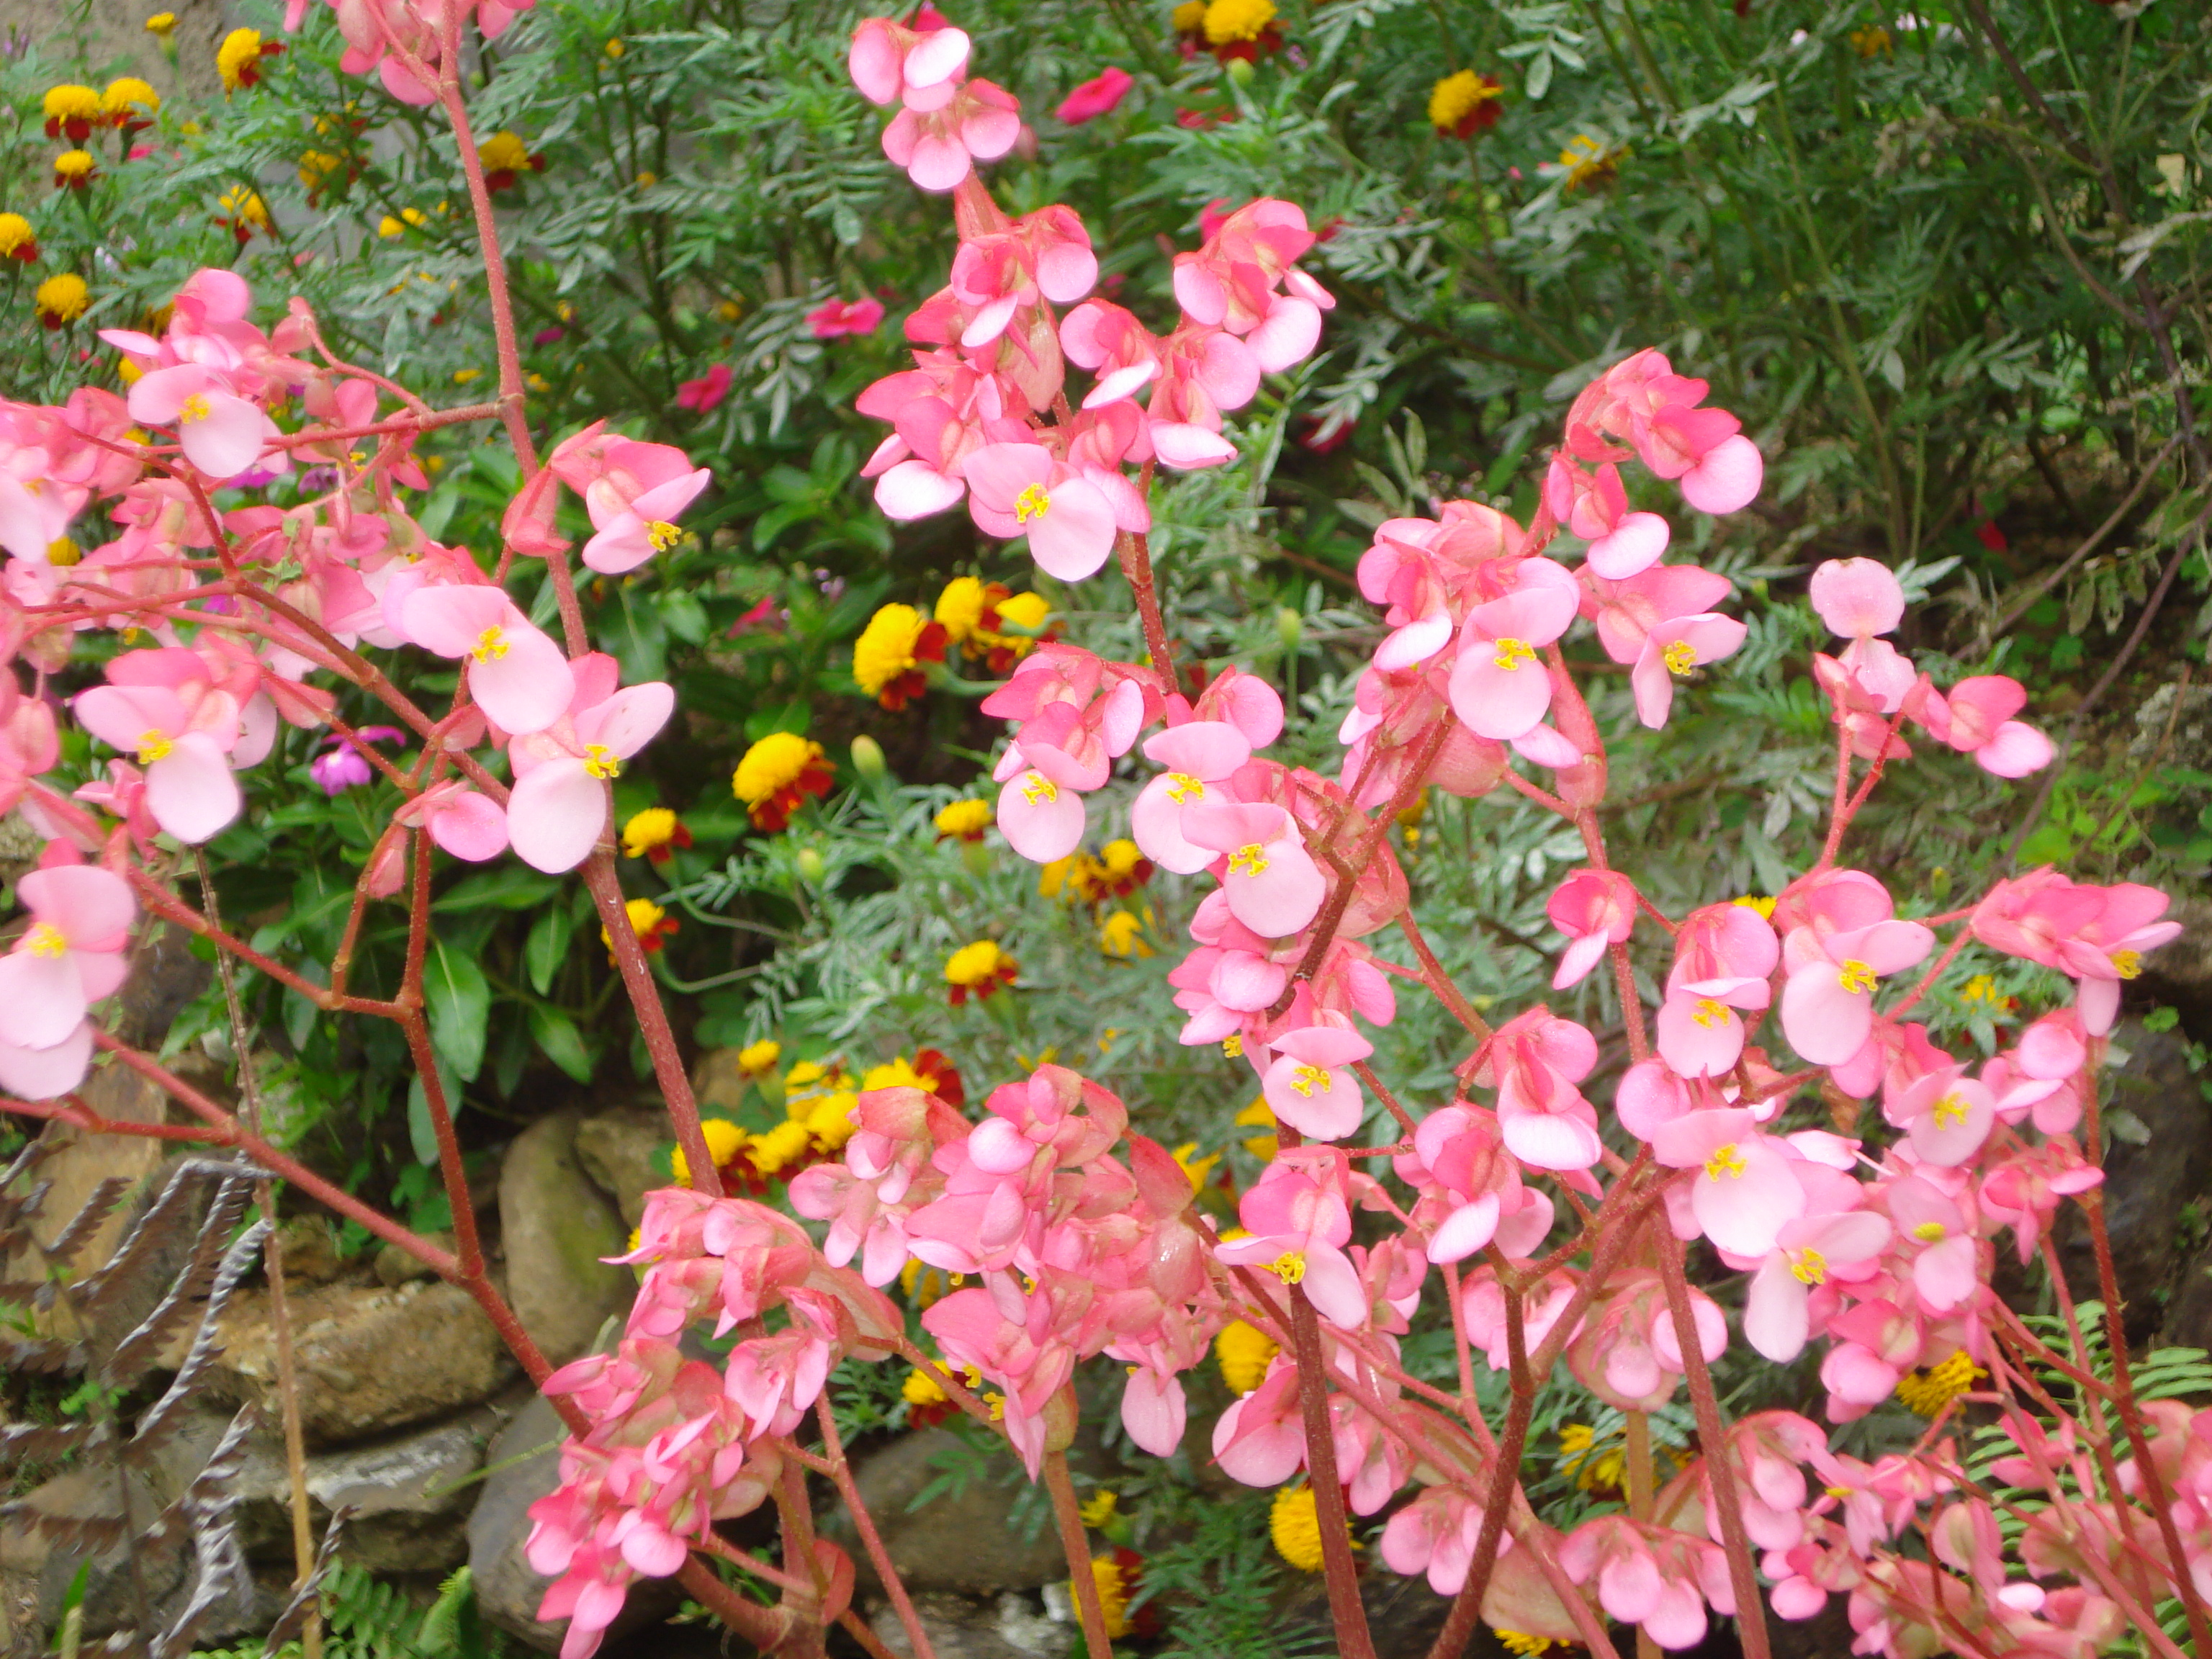 Description Plantas con flores rosadas.JPG